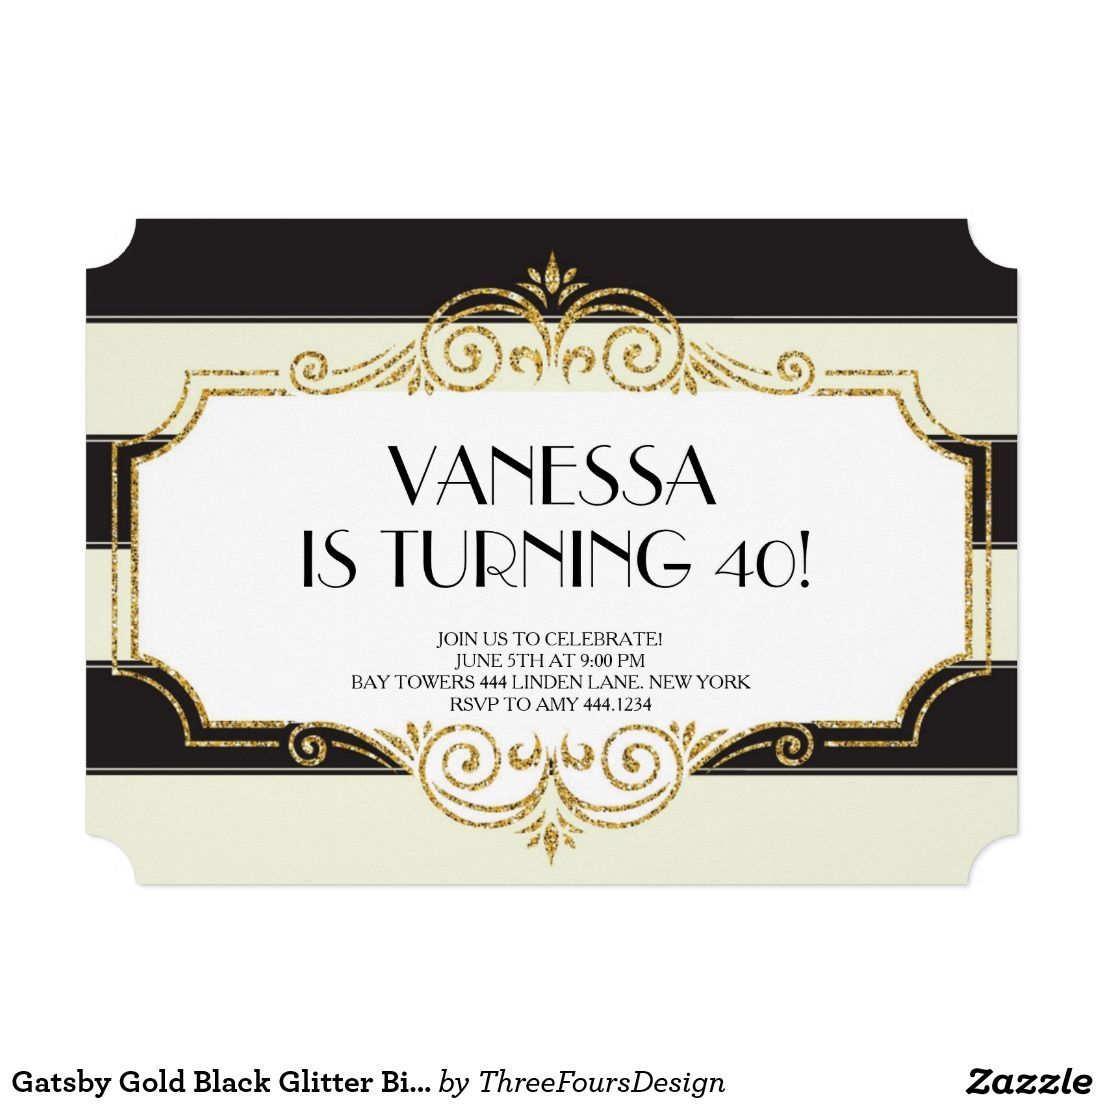 Gatsby Gold Black Glitter Birthday Invitations | Glitter birthday ...